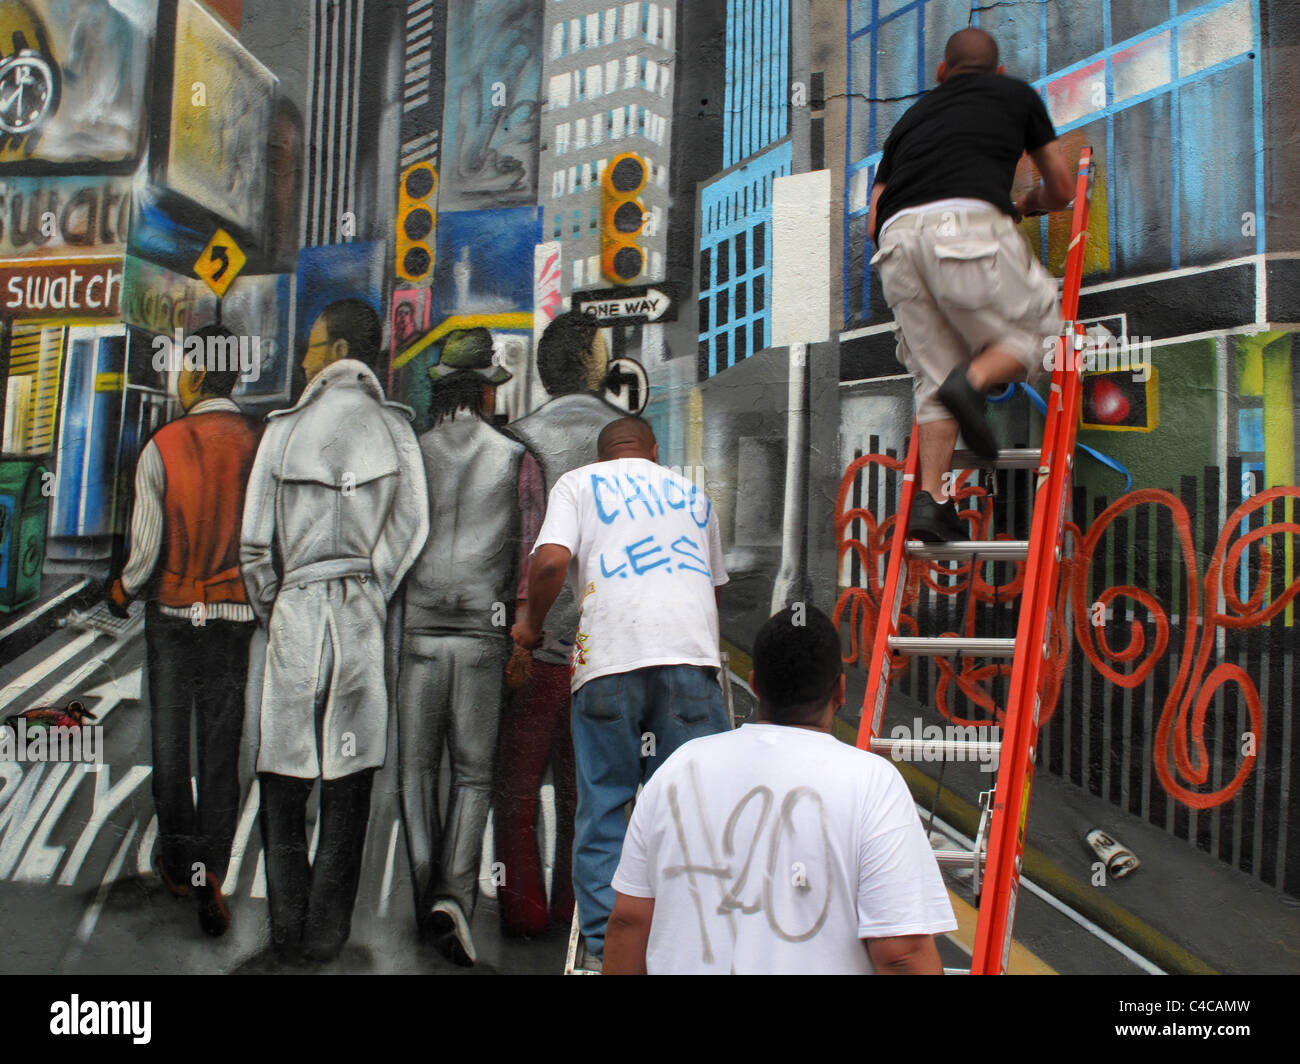 Graffiti artists at work on East Houston Street, New York - Stock Image